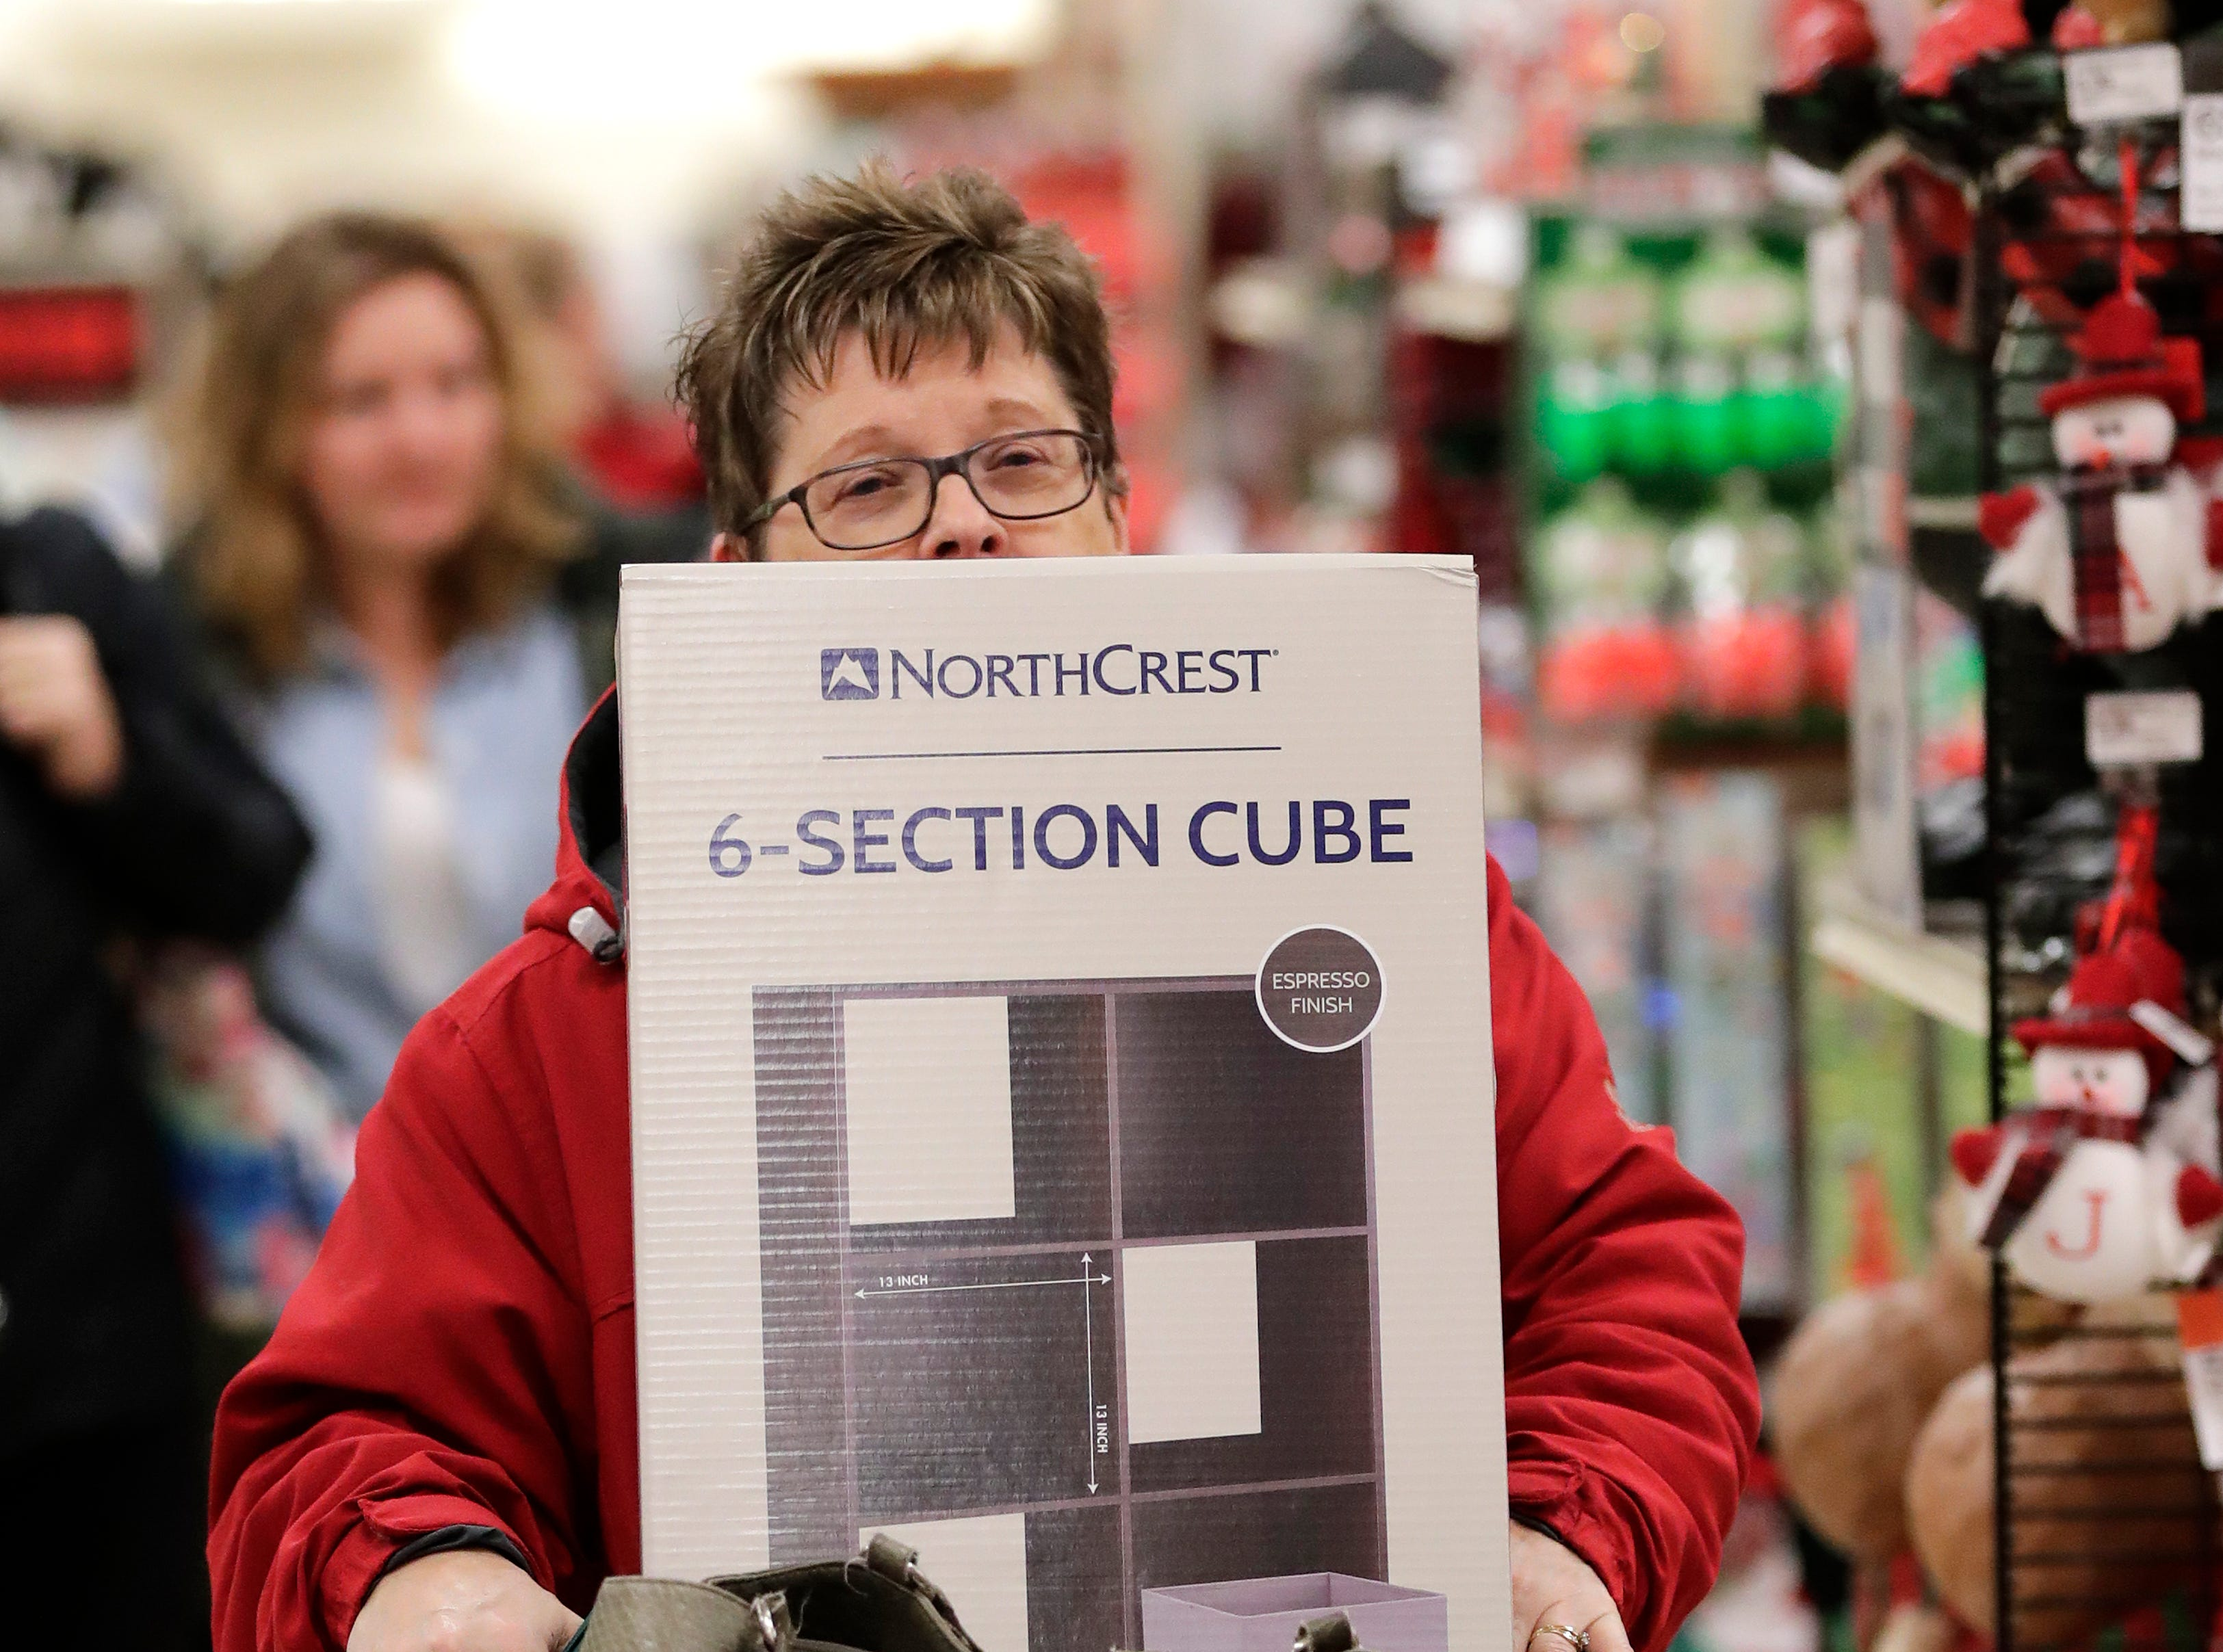 Karen Waehler of Hilbert has Black Friday deals stacked high in her cart while shopping at Shopko Thursday, November 22, 2018, in Appleton, Wis. 